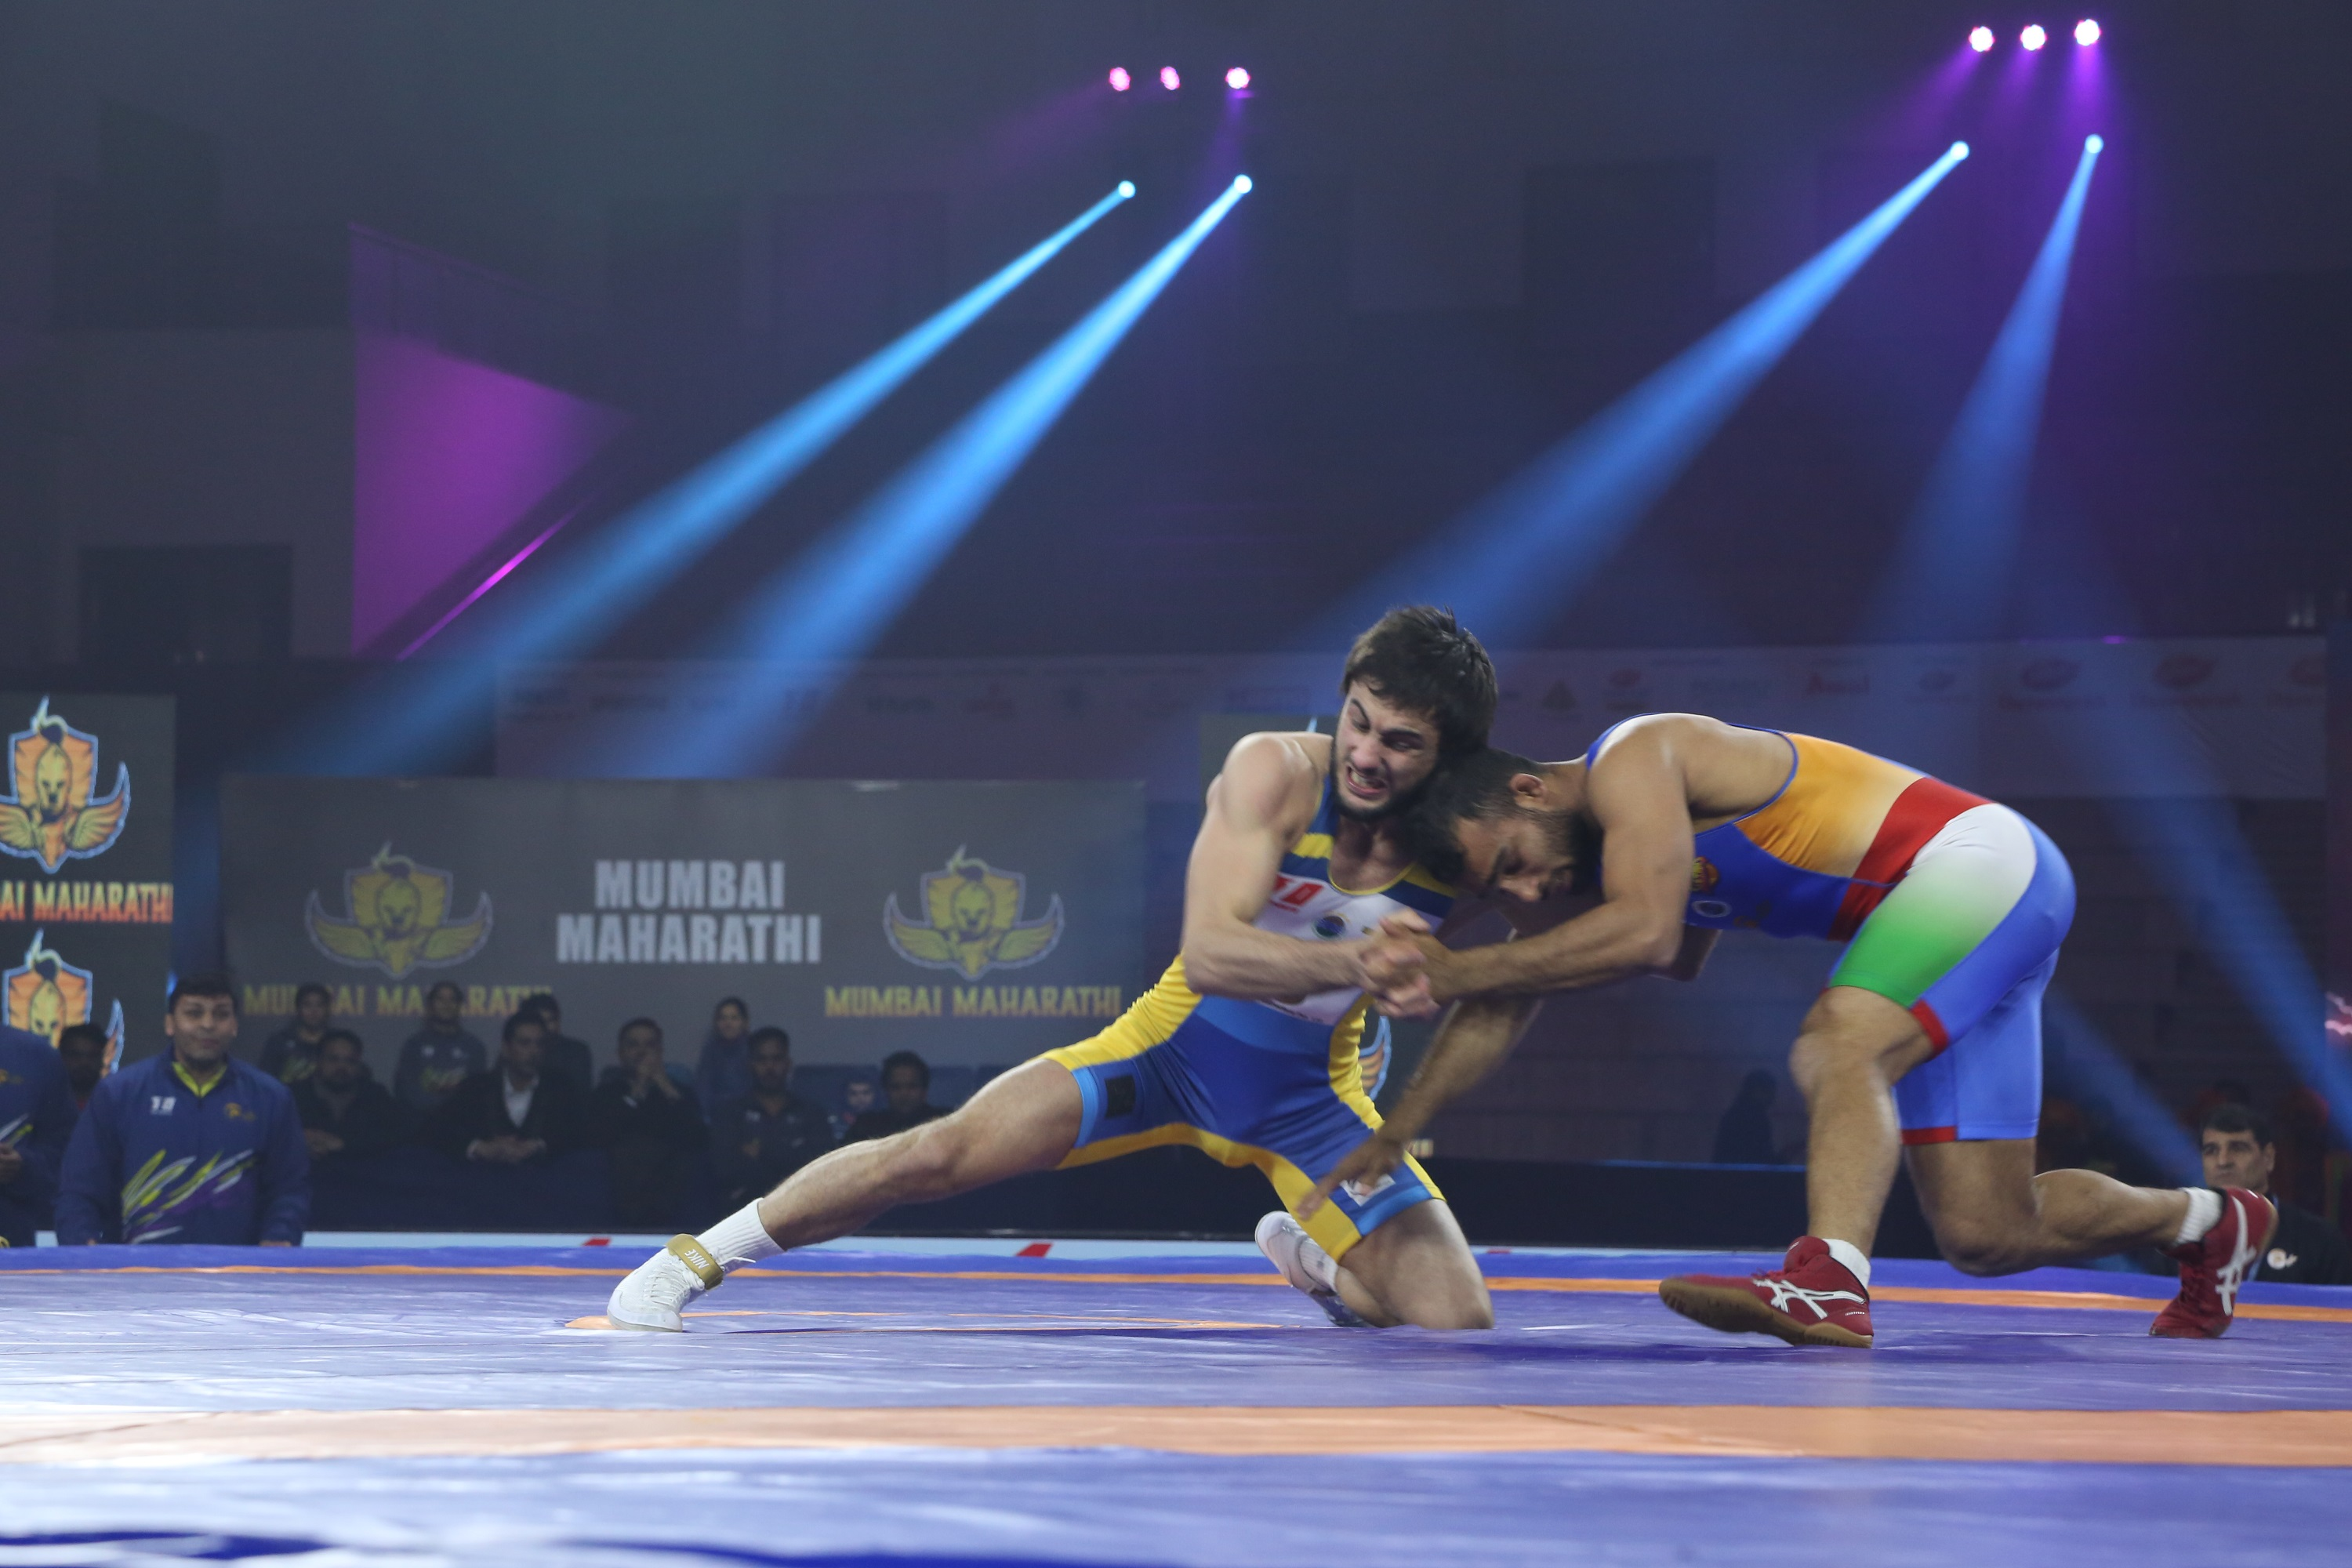 Pankaj of Delhi Sultans fight it out against Ibragim Ilyasov of Mumbai Maharathi